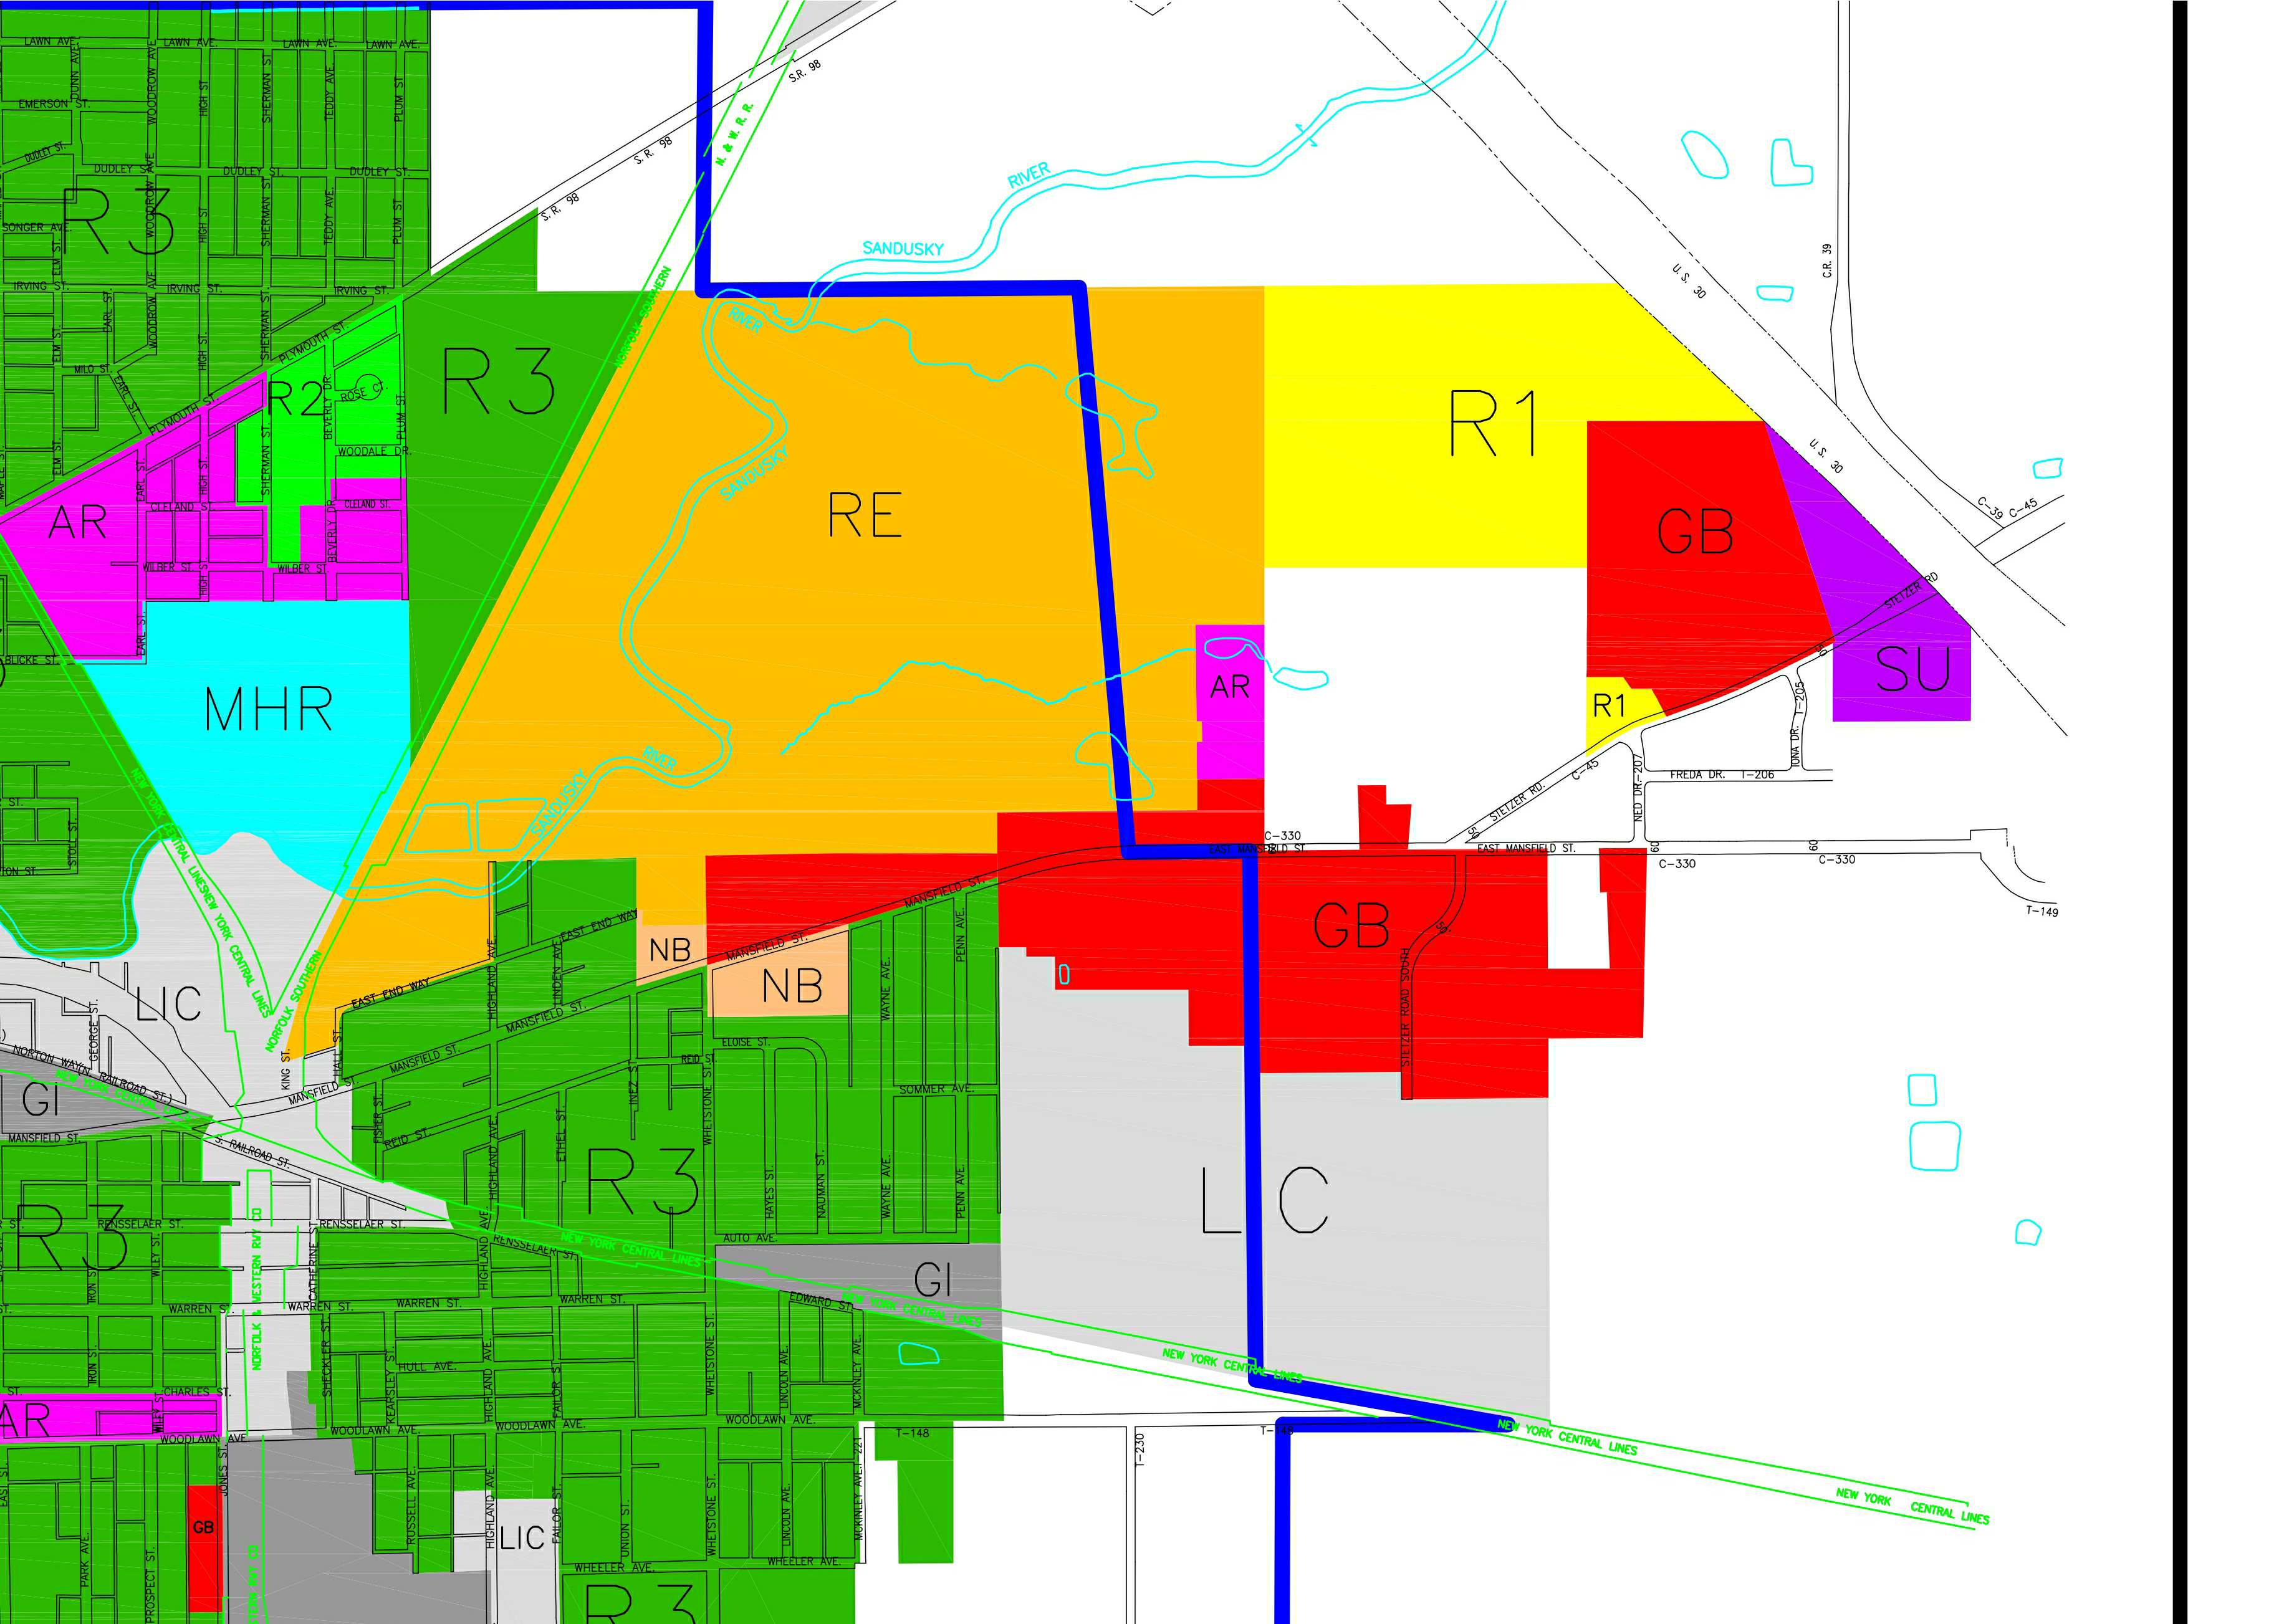 Tile 4 of the Bucyrus Zoning Map